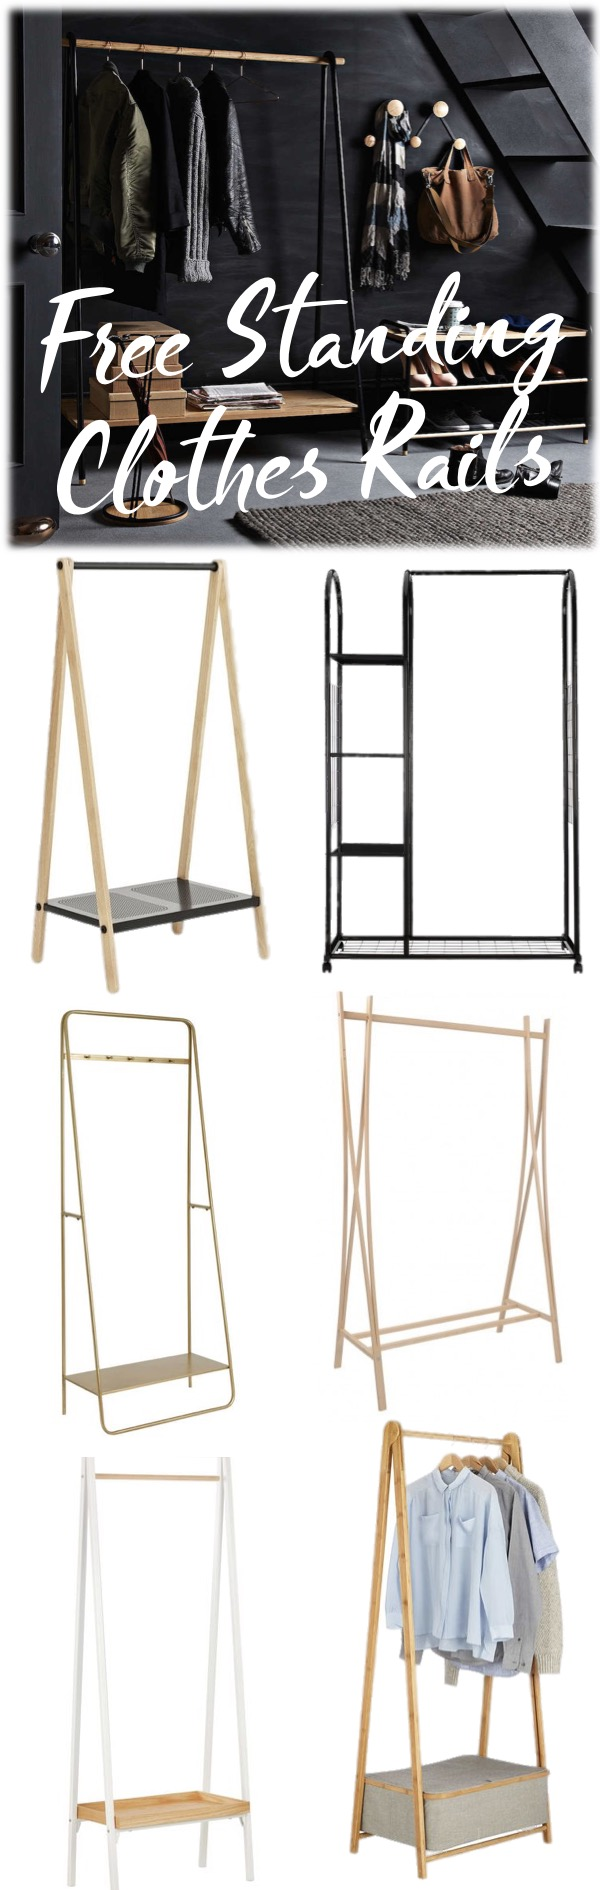 fabulous free standing clothes rails mood board